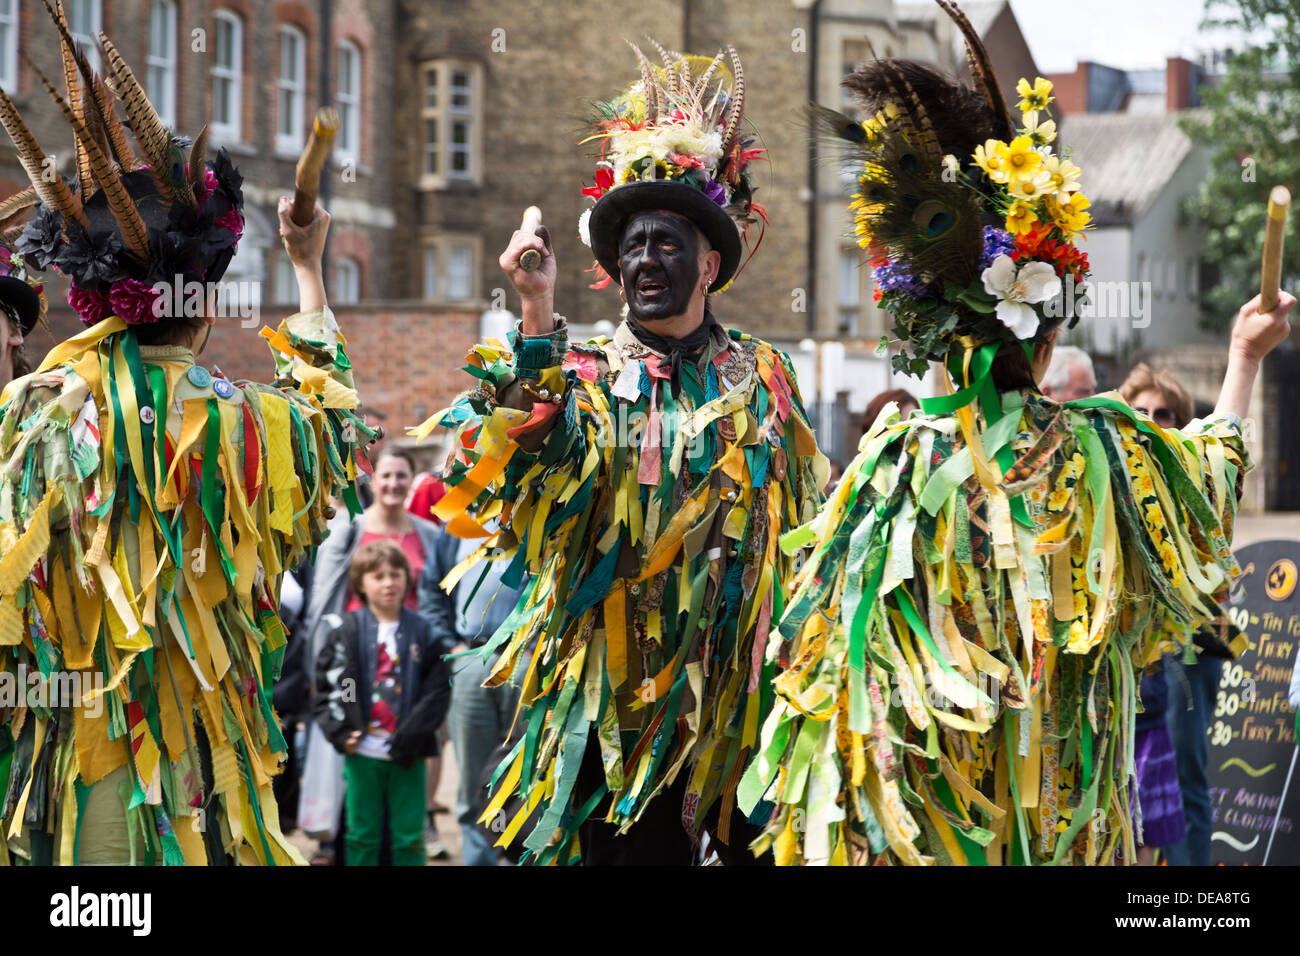 Morris dancers with black painted faces at the Peterborough Heritage Festival 22 June 2013, England - Stock Image